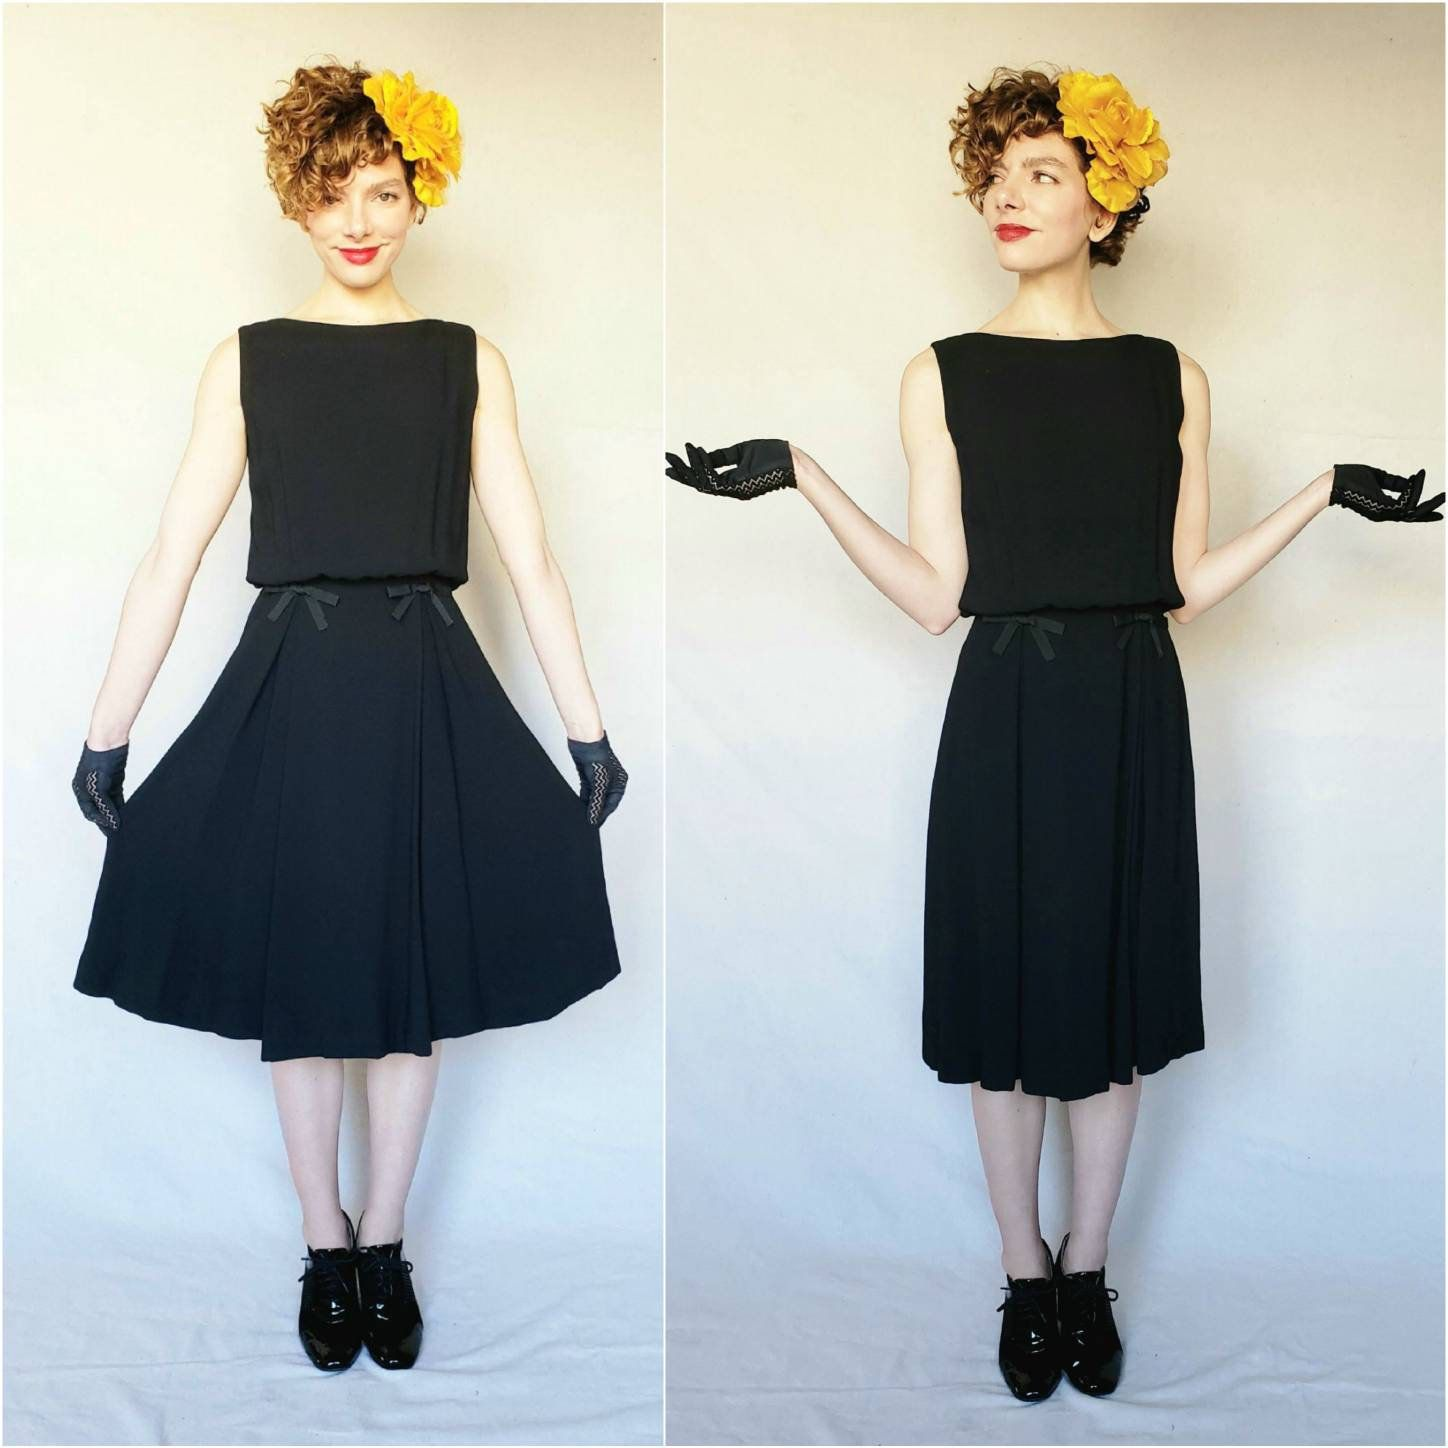 1960s Black Cocktail Dress With Bows Kay Martin Chicago 60s Etsy Black A Line Skirt Black Cocktail Dress Party Dress [ 1448 x 1448 Pixel ]